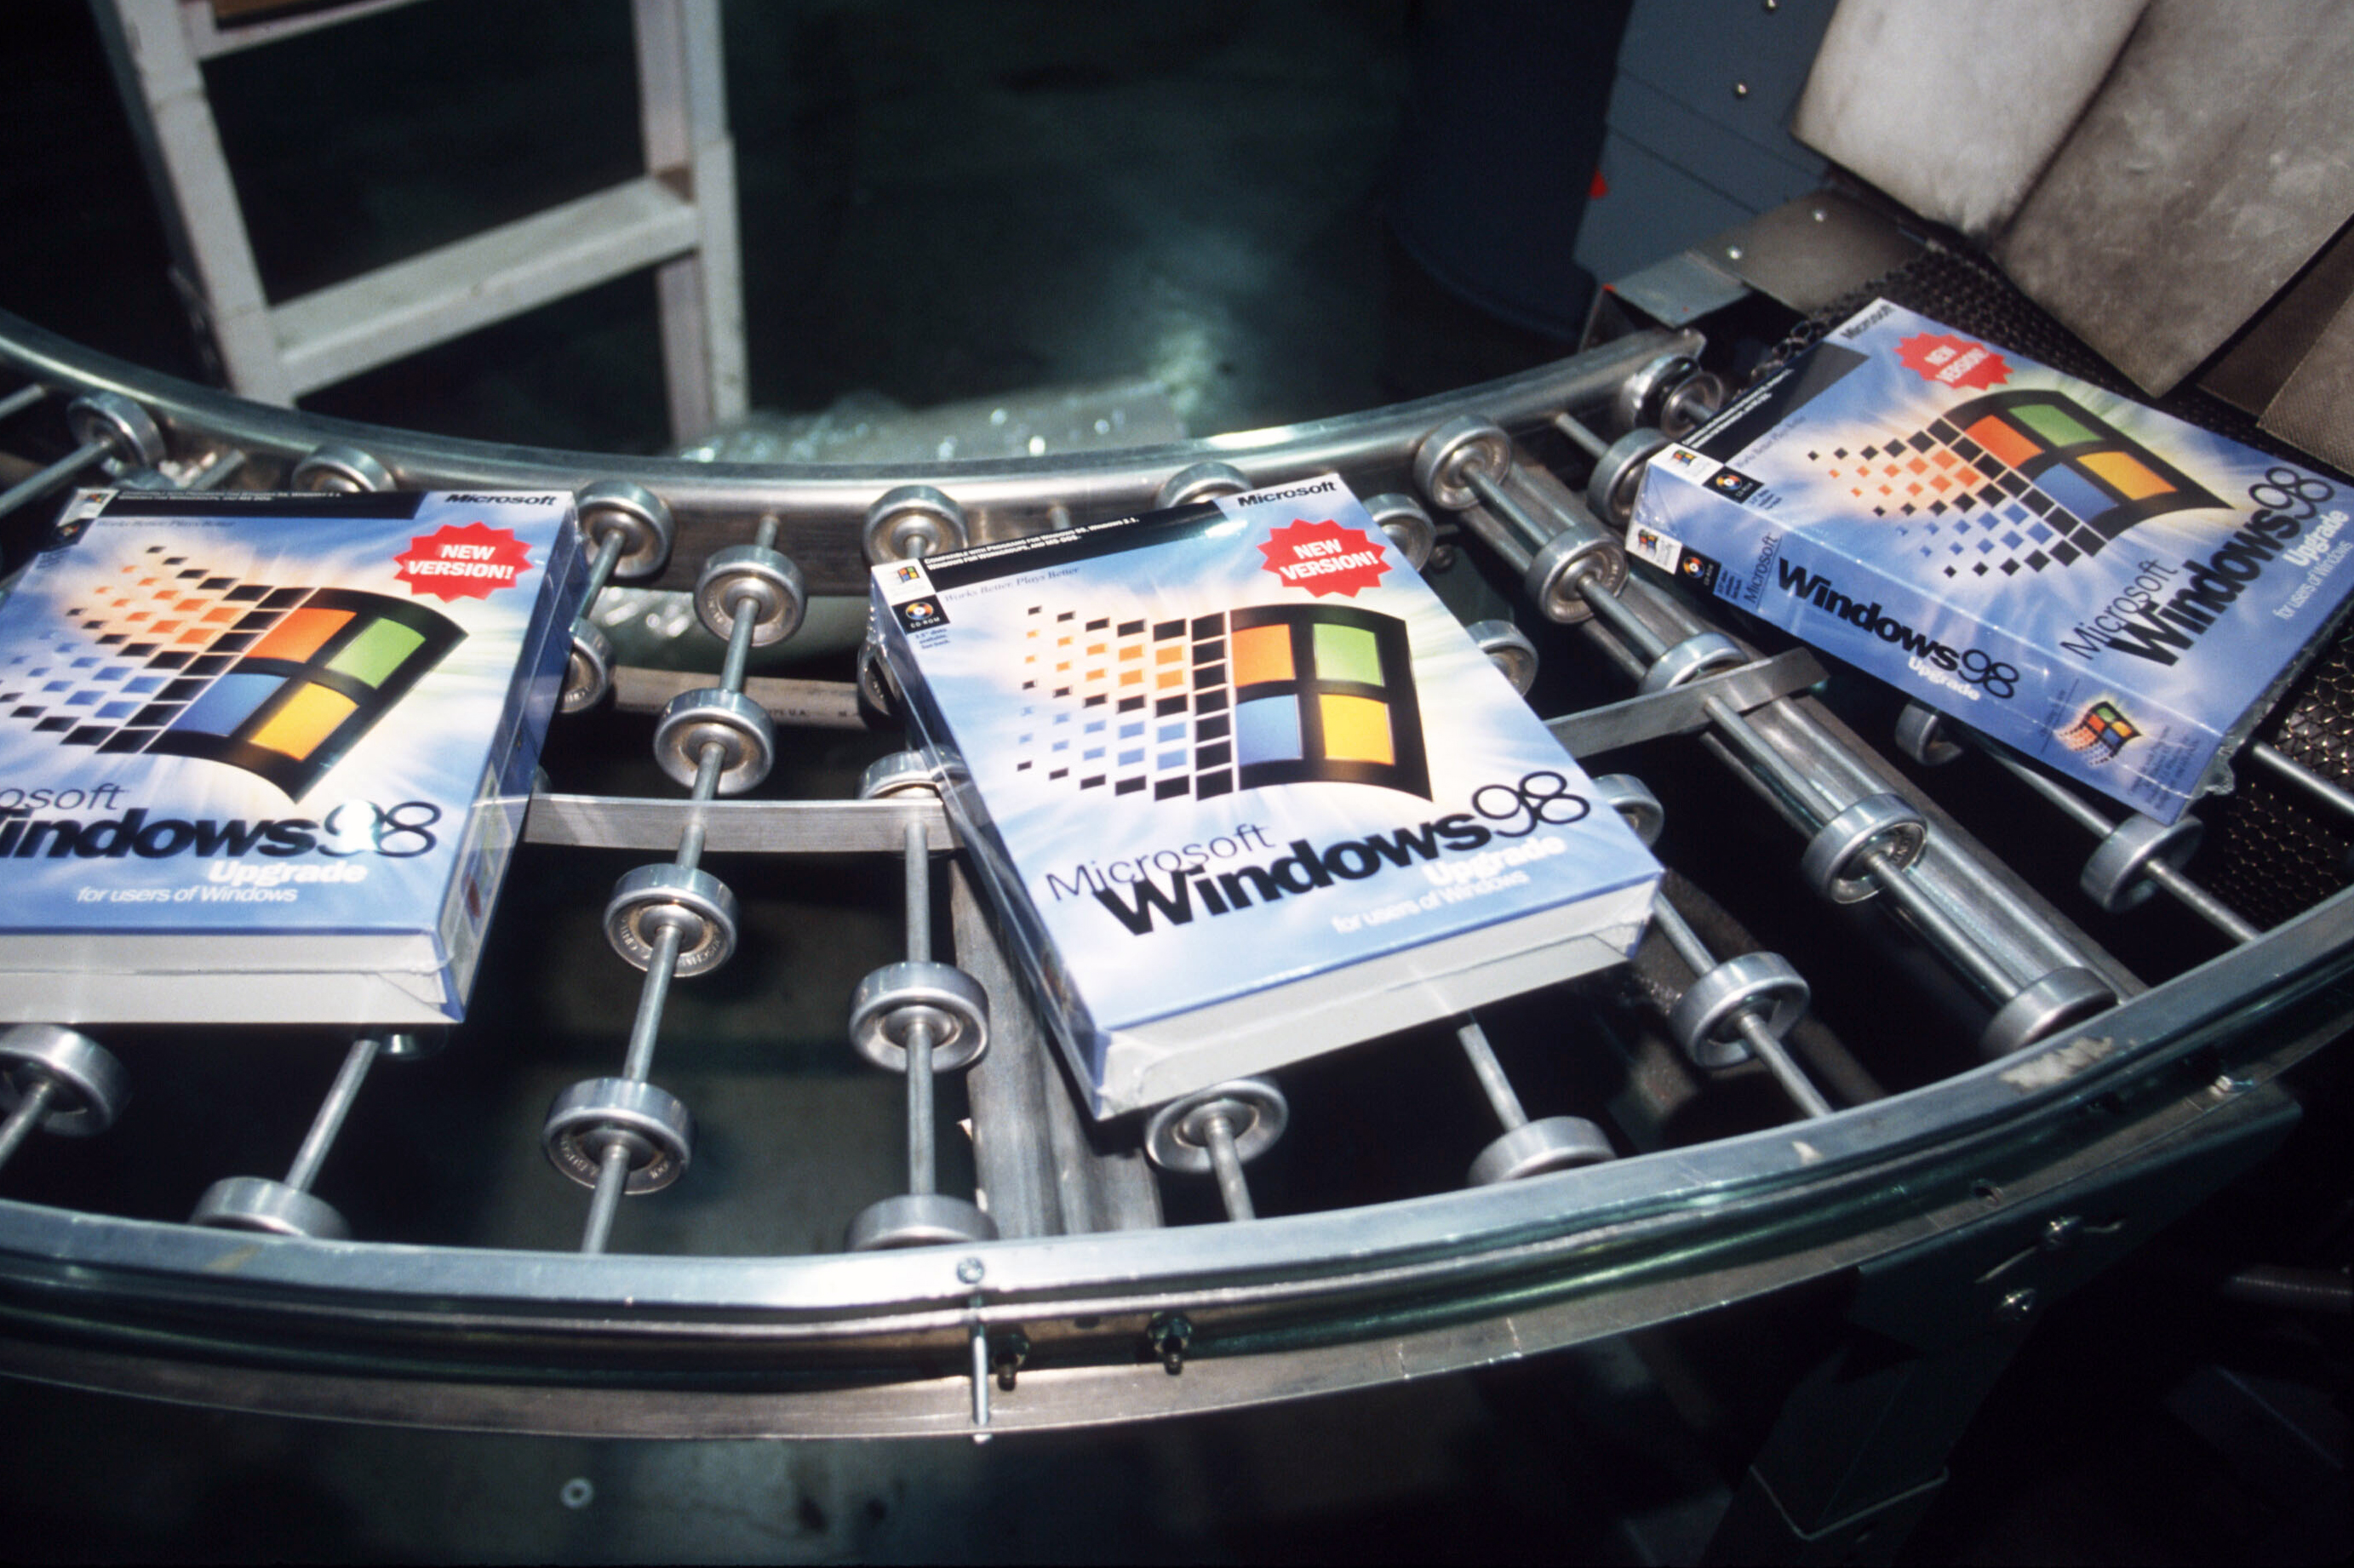 Windows 98 software packages sit on an assembly line June 24, 1998 in Bothell, WA.